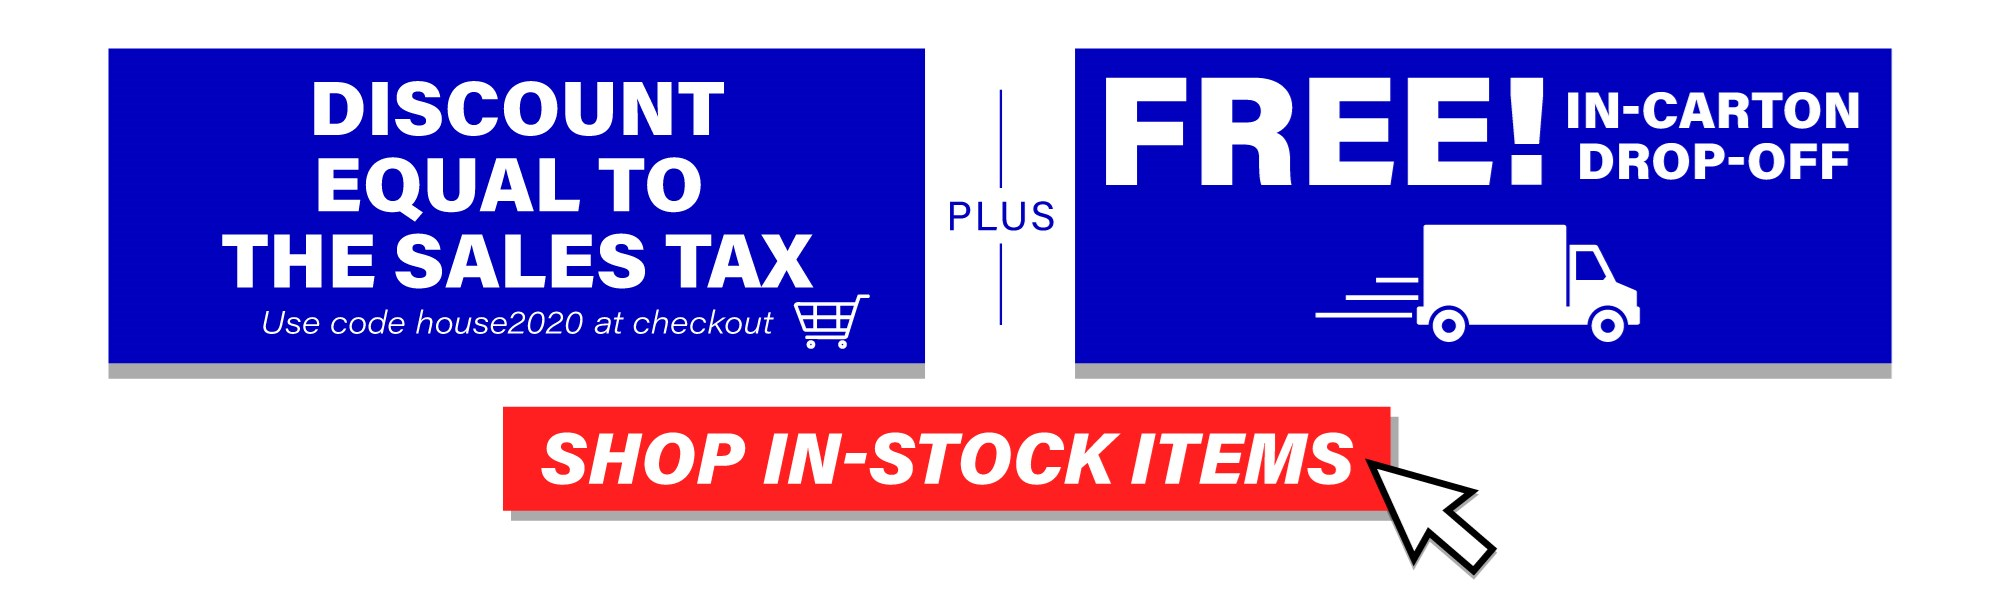 sales tax discount and free in carton drop off for in stock items